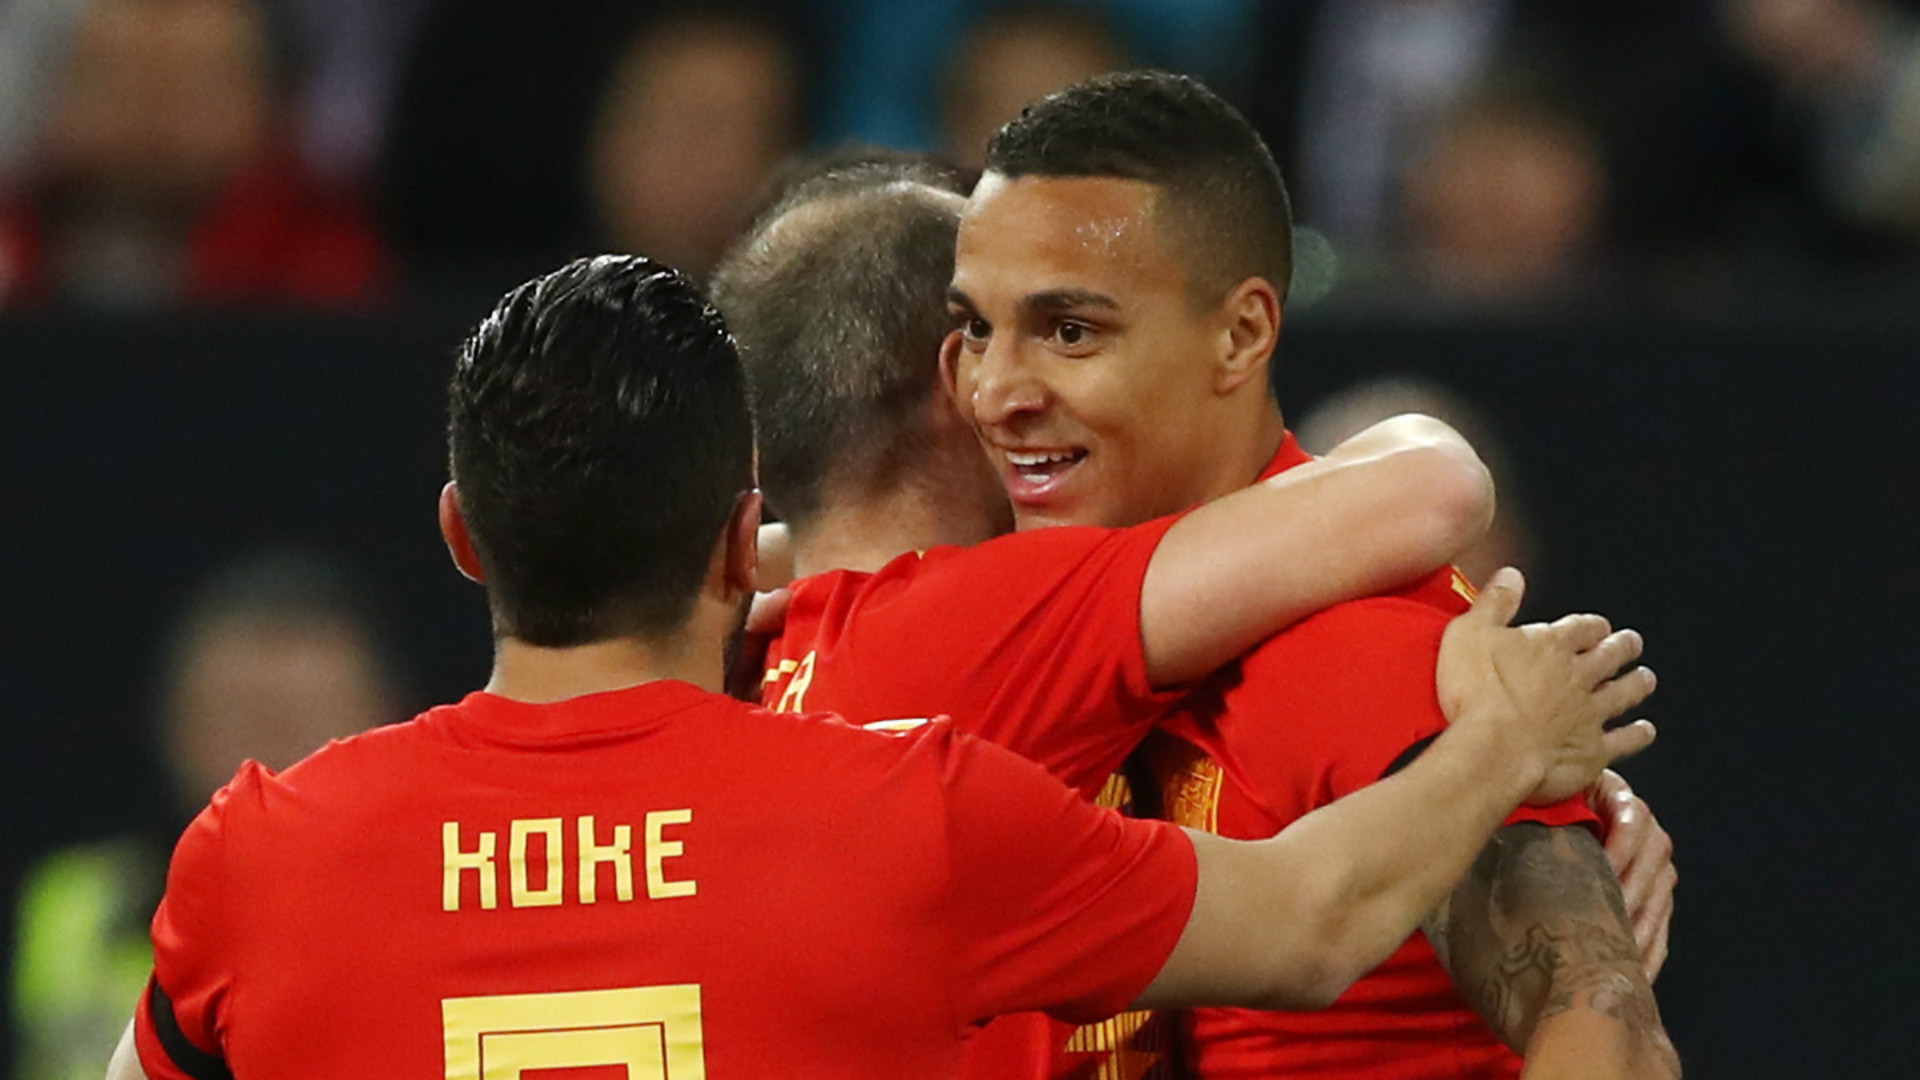 Spain's 2018 World Cup squad predicted: Who will join Ramos &Iniesta in 23-man list?